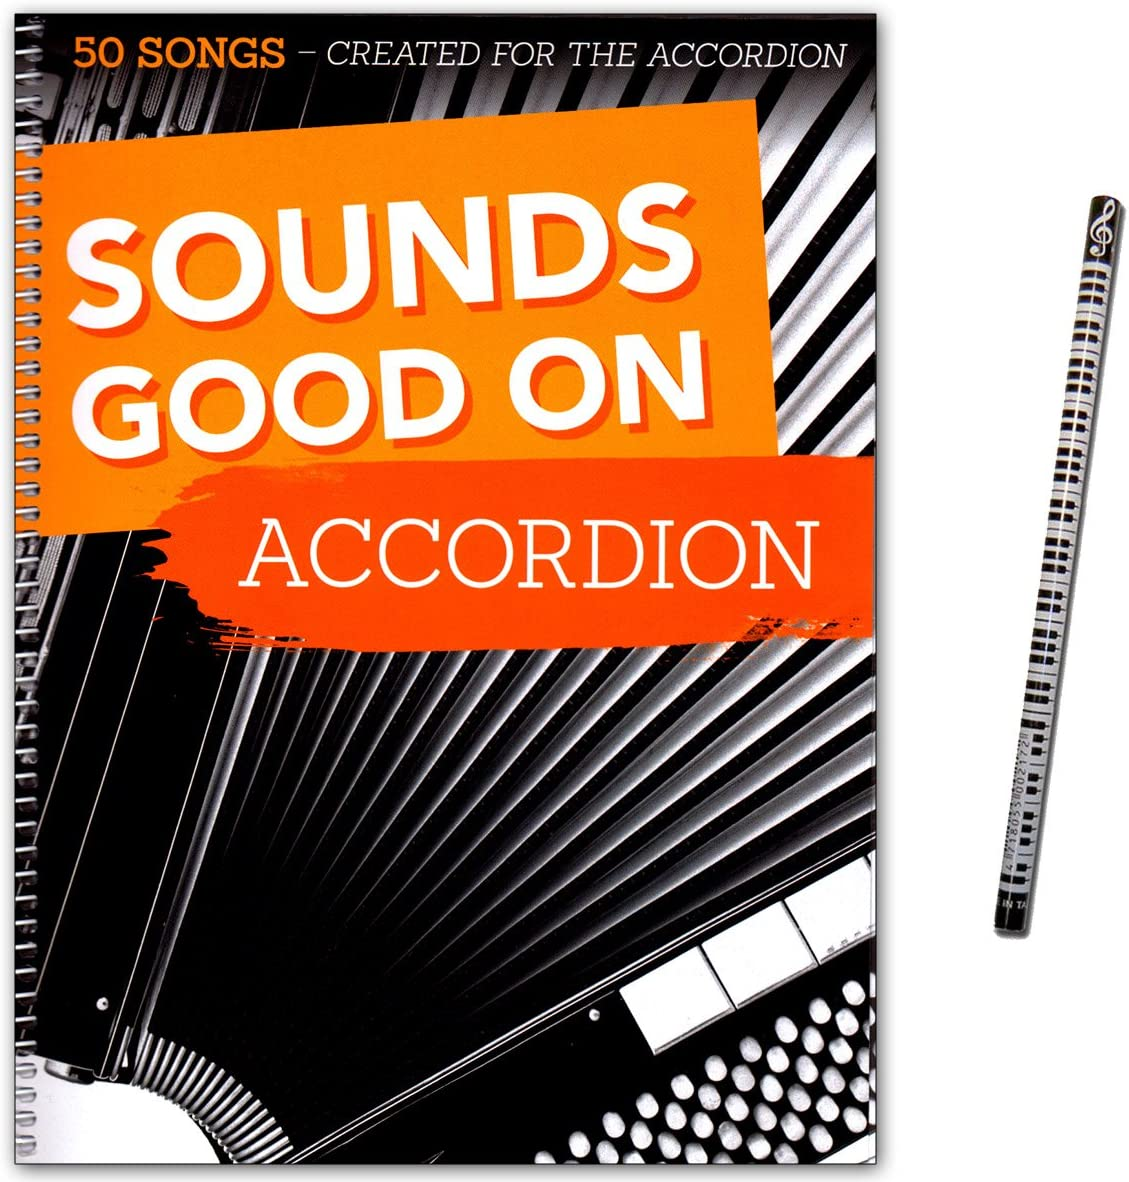 Sounds Good On Accordion, 50 Canzoni Scritte Per Fisarmonica, Con Matita Con Piano